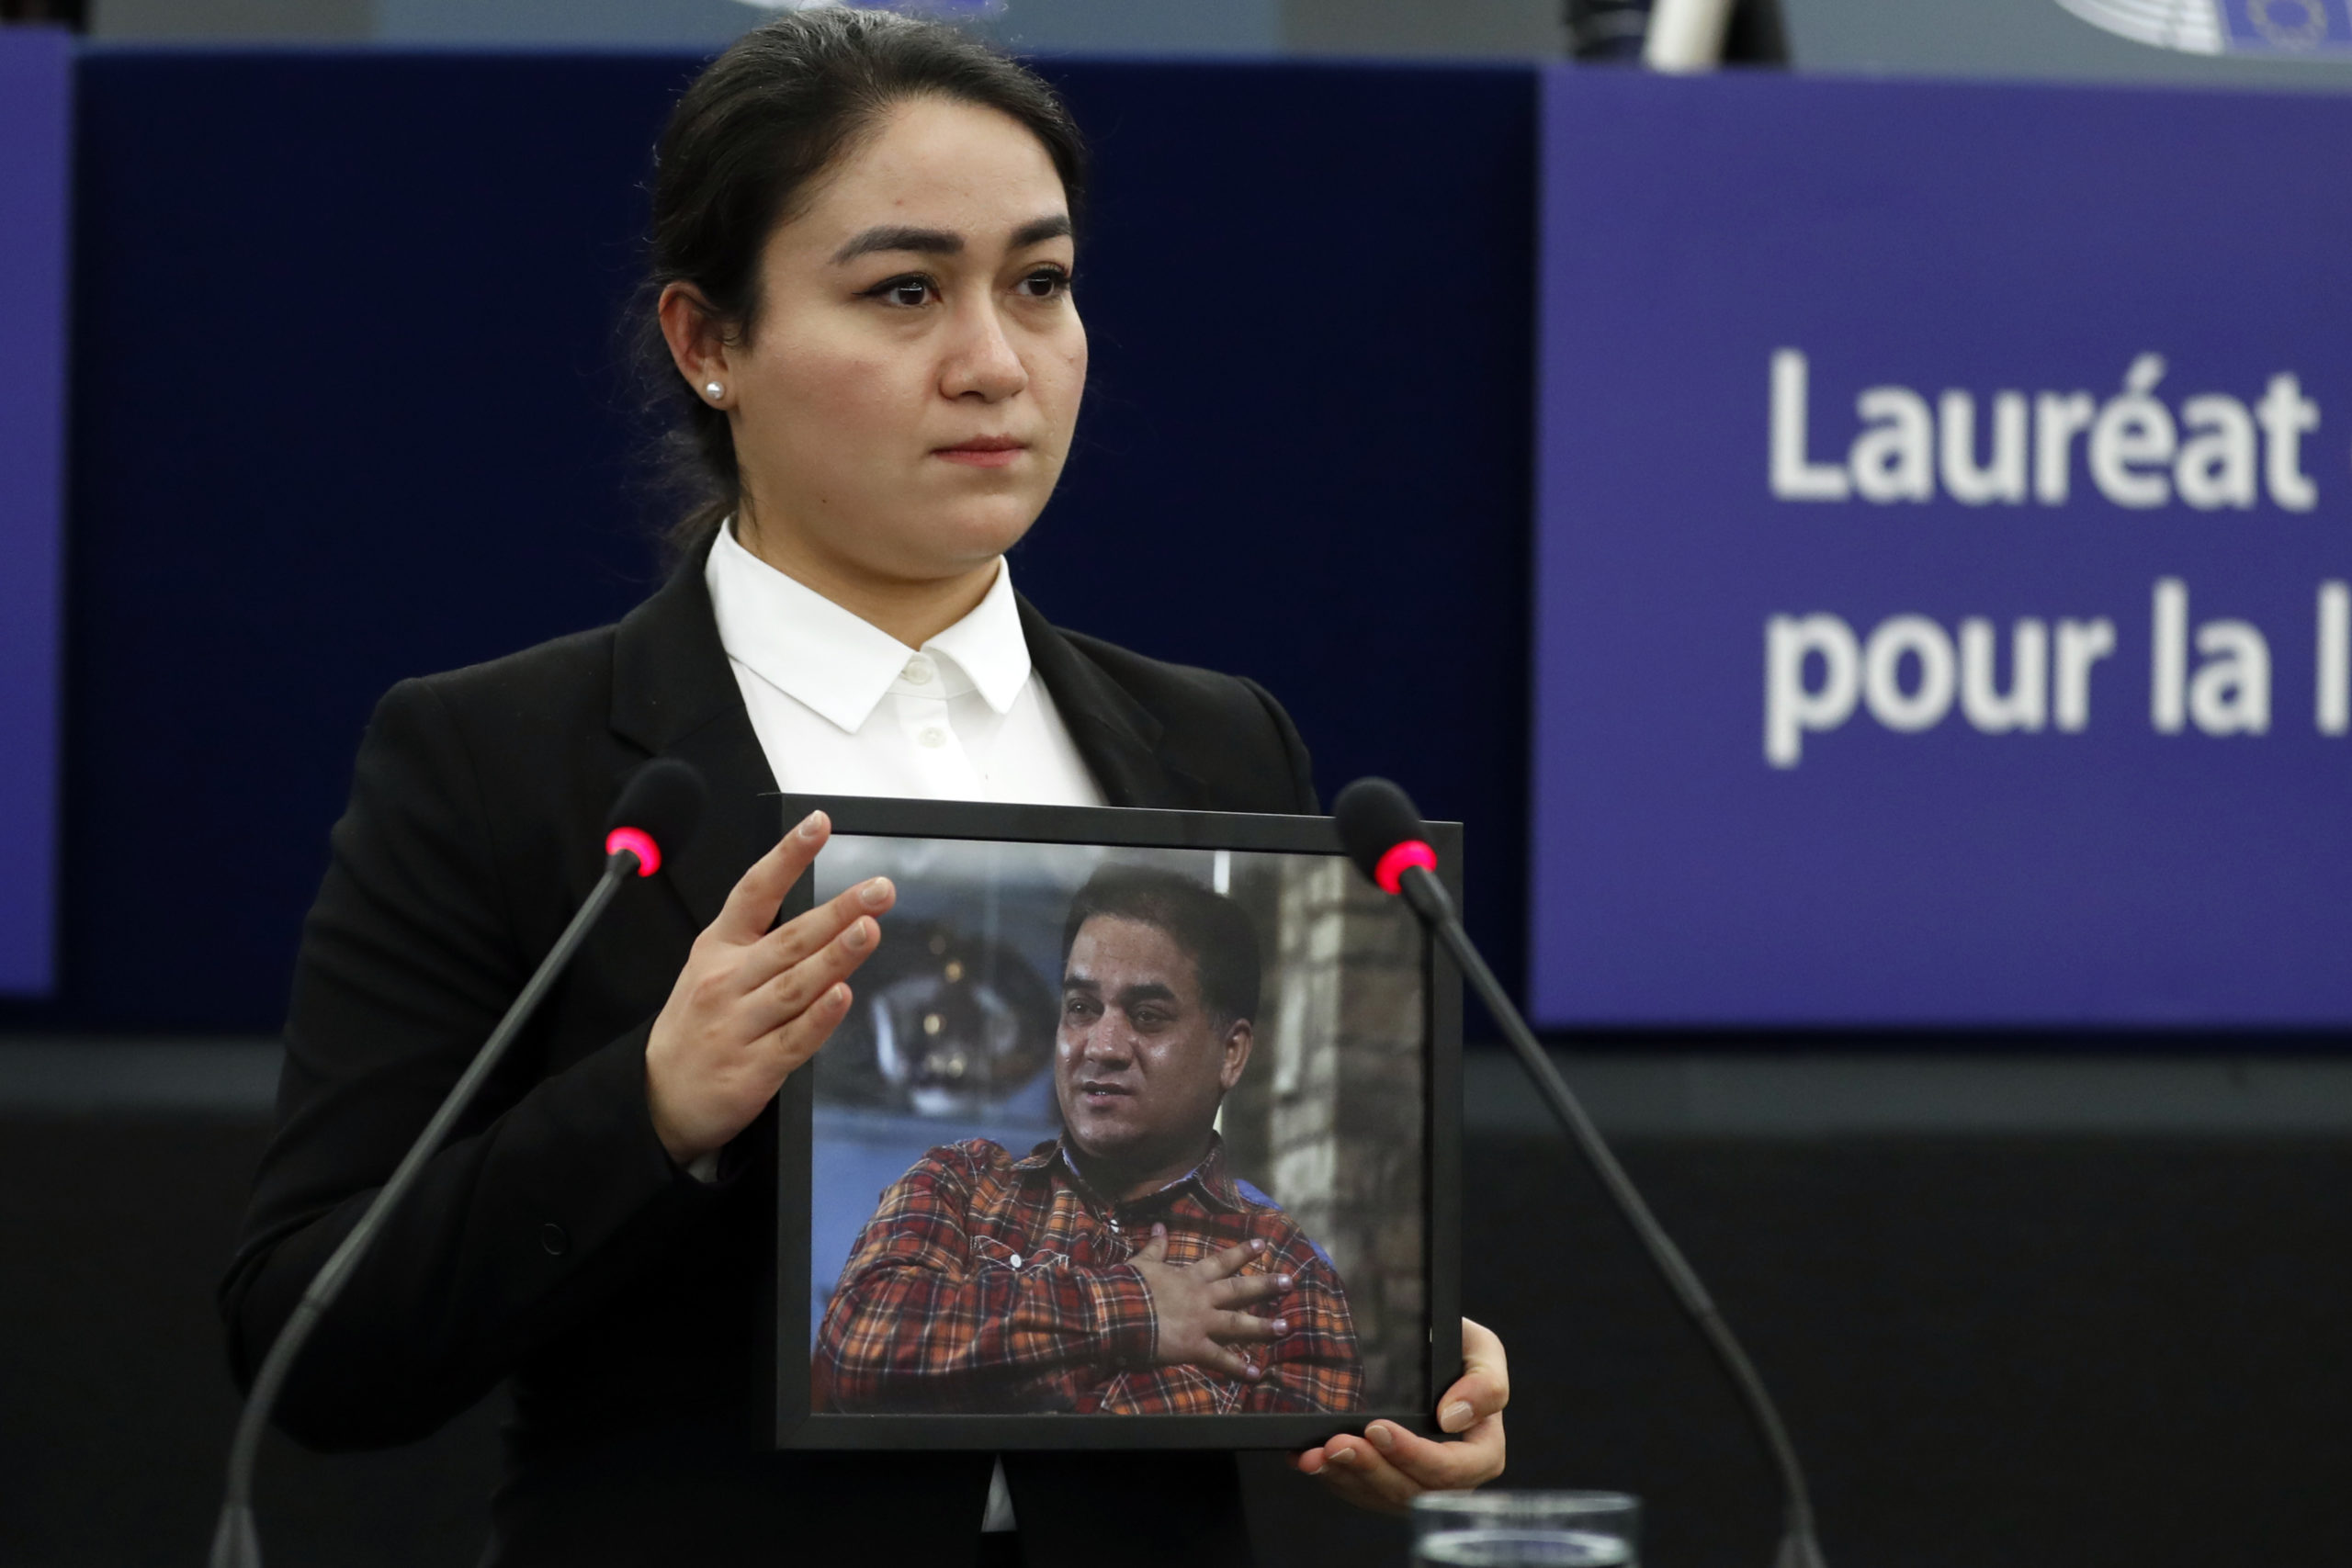 Daughter of jailed Uighur activist accepts EU prize in his name